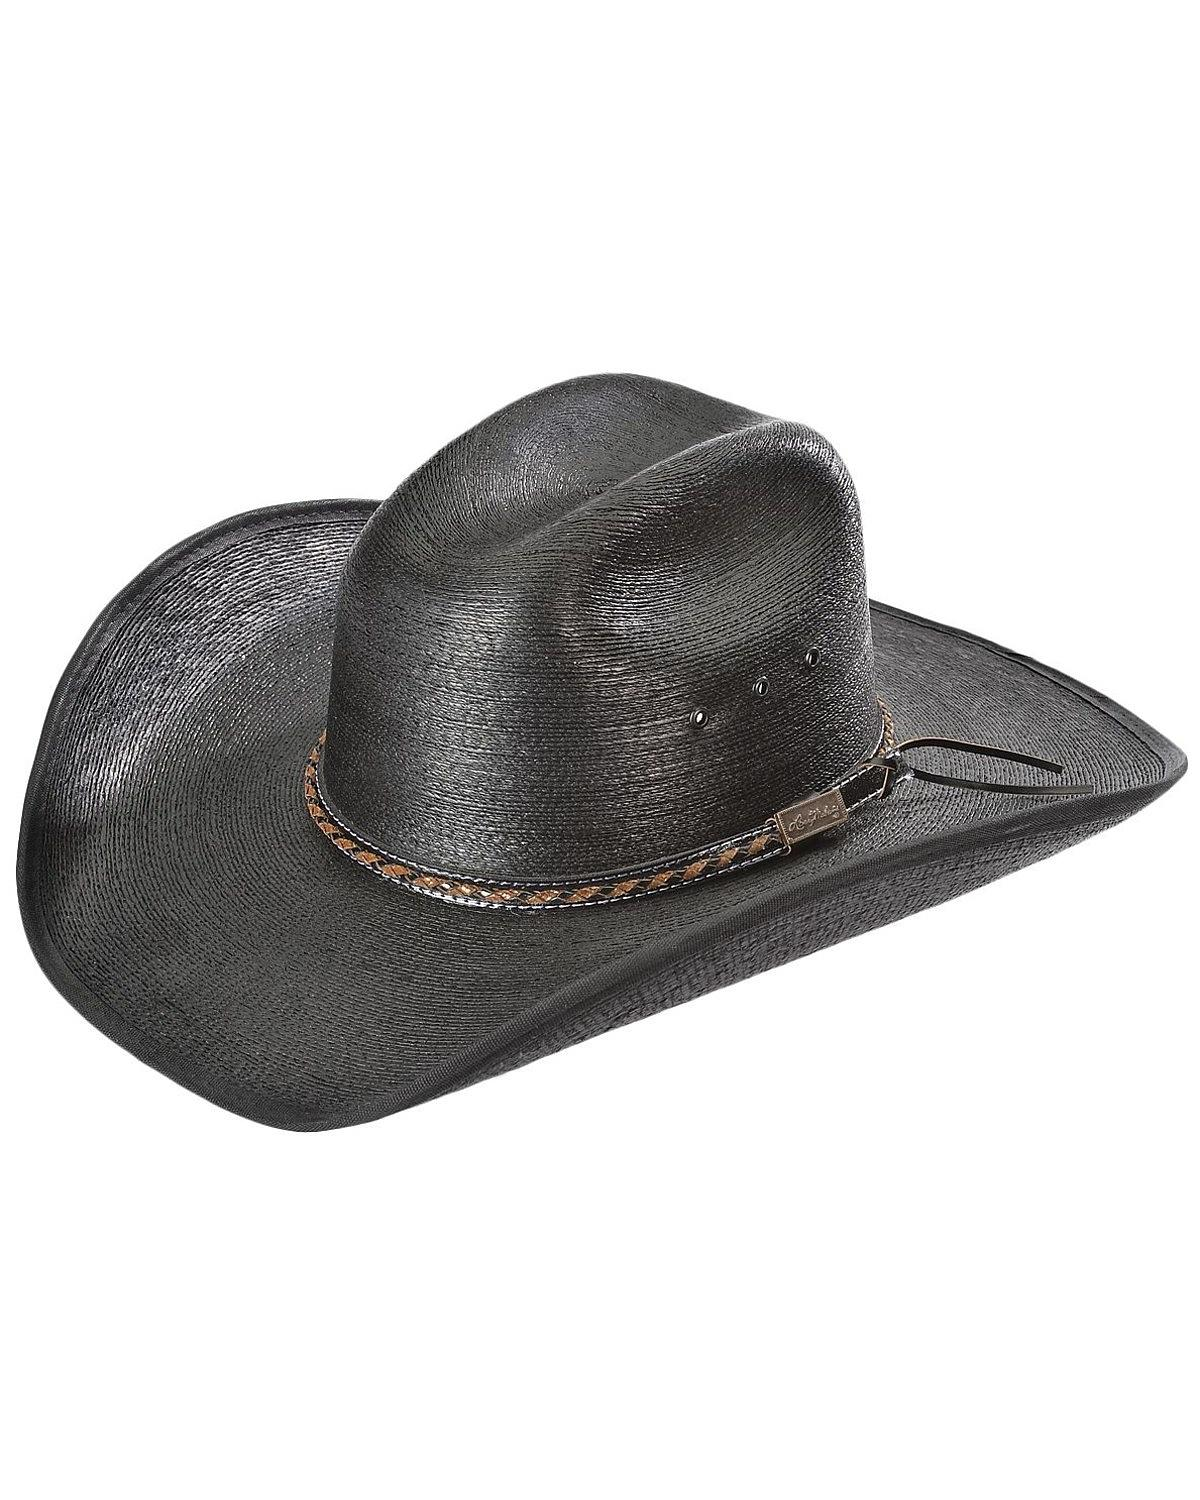 Larry Mahan Men's 30X Lawton Palm Straw Cowboy Hat - MS ...